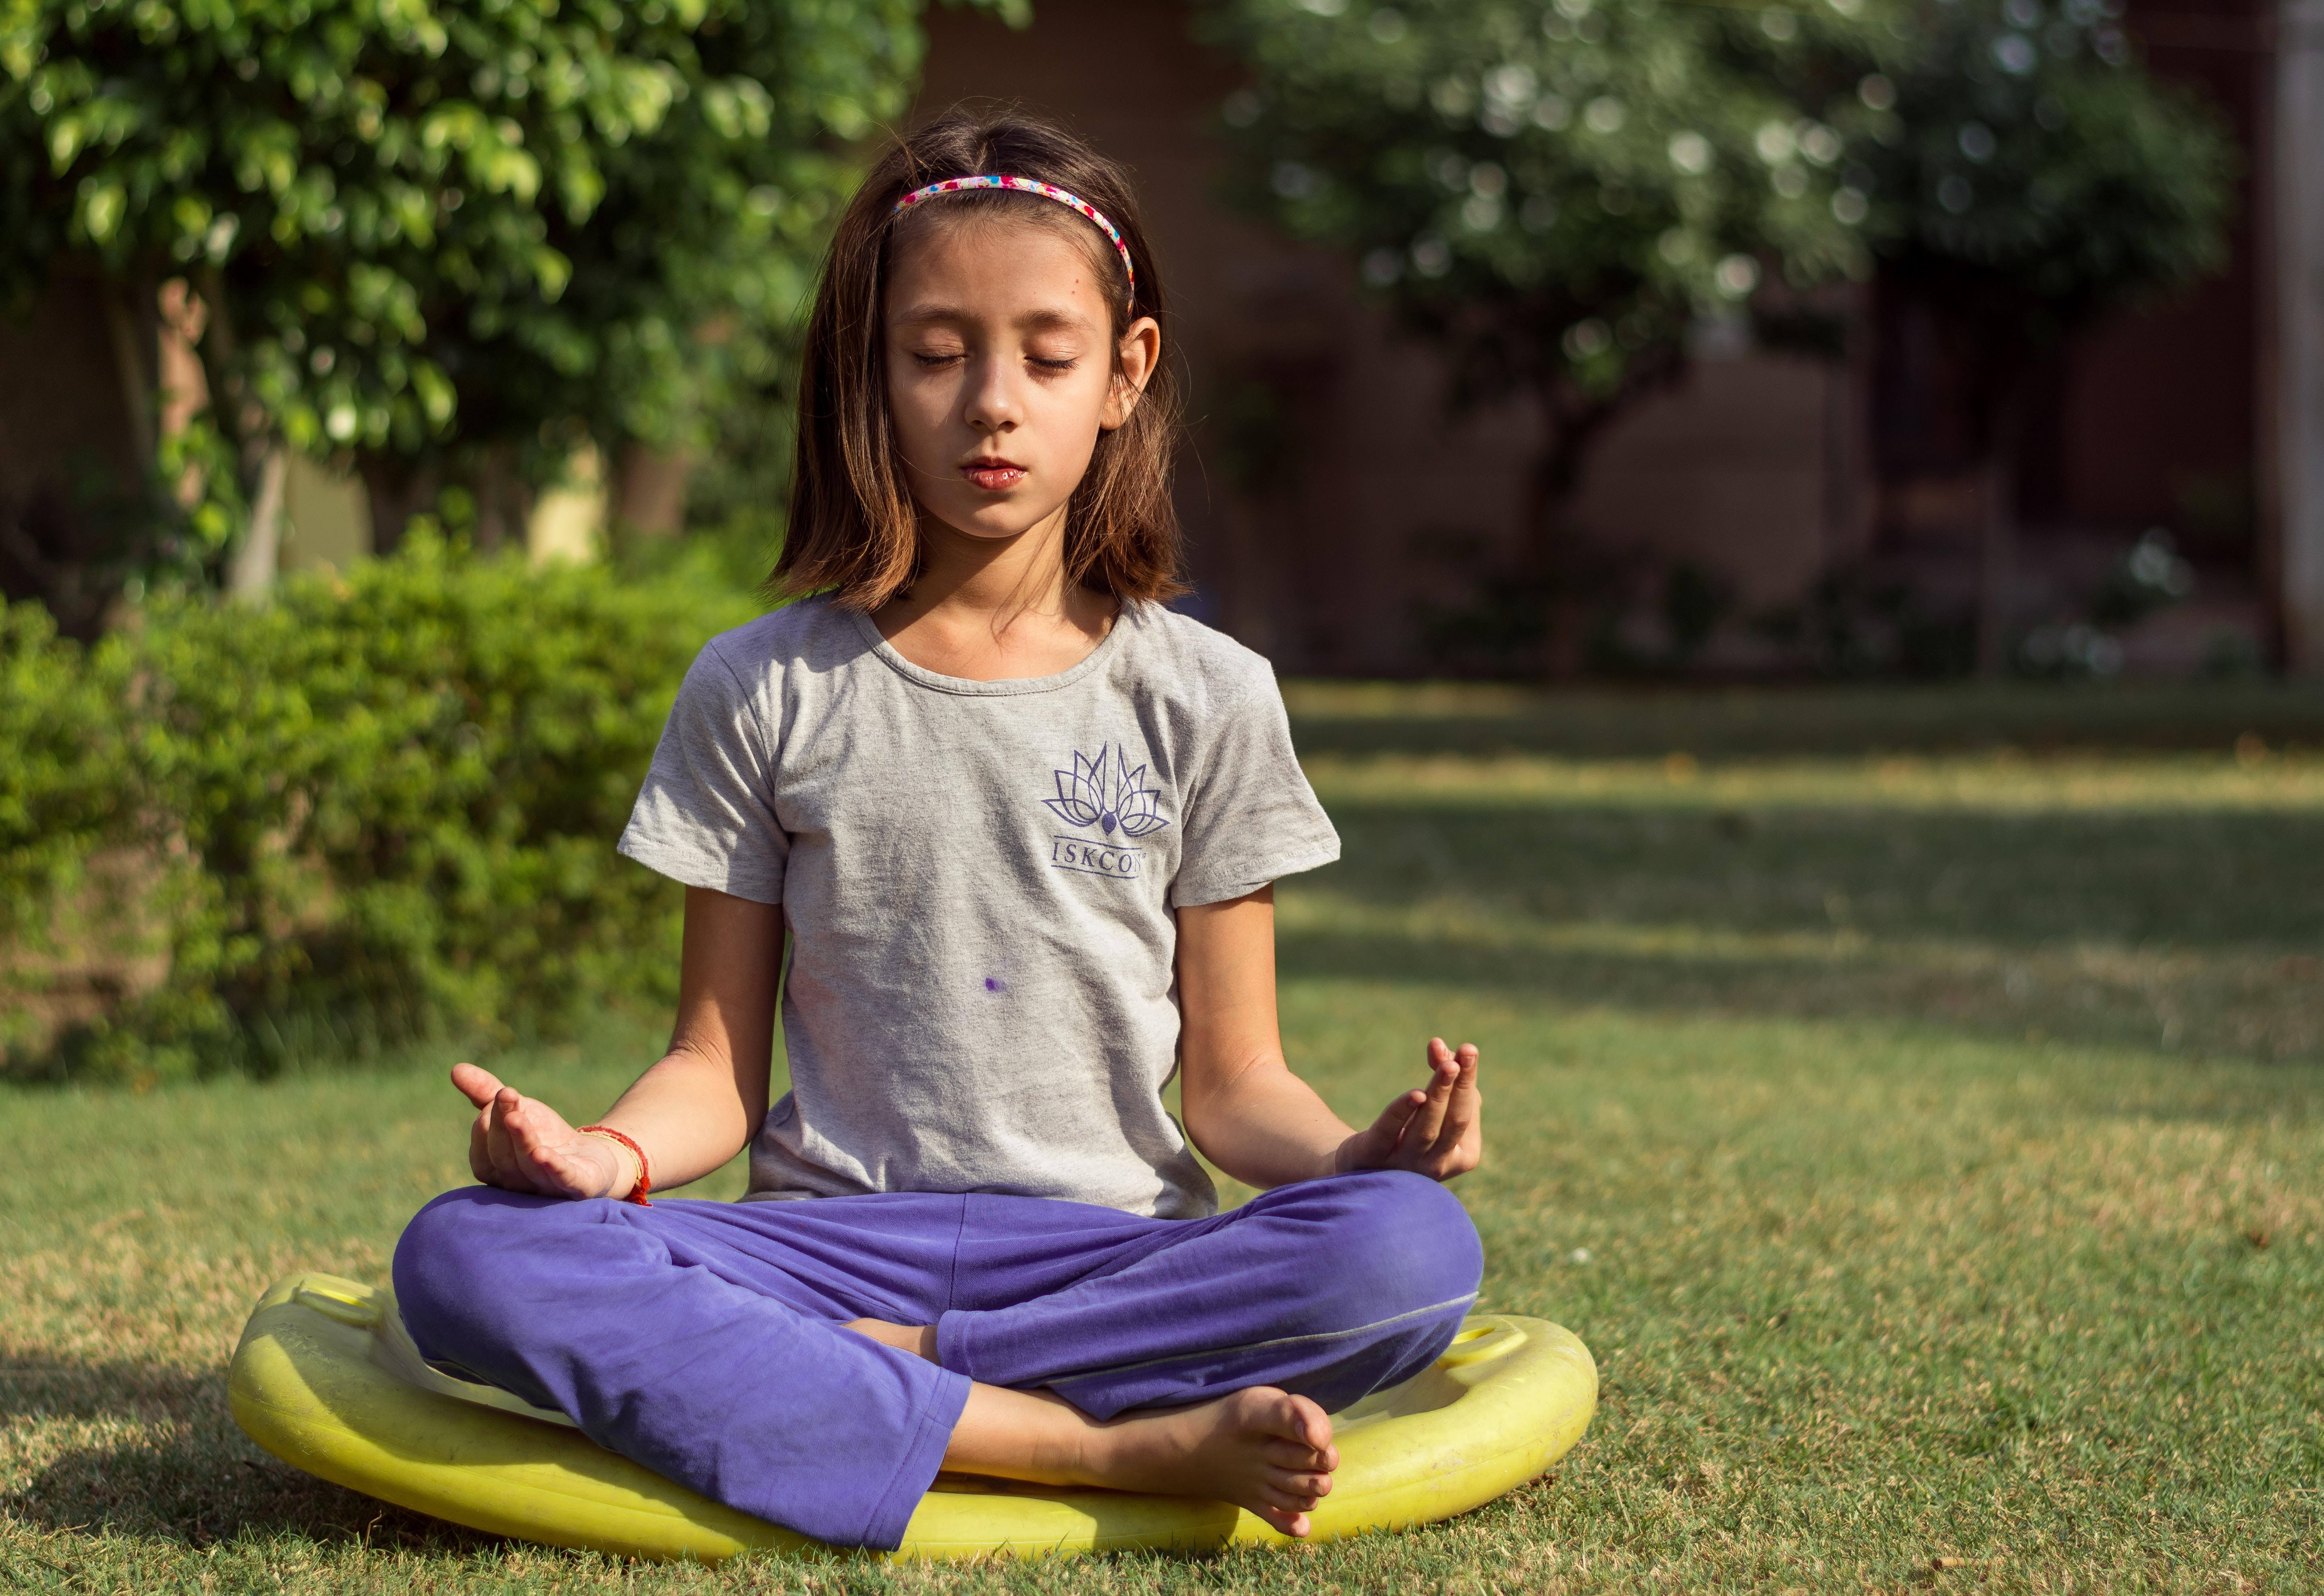 yoga holidays are great for kids as well as adults